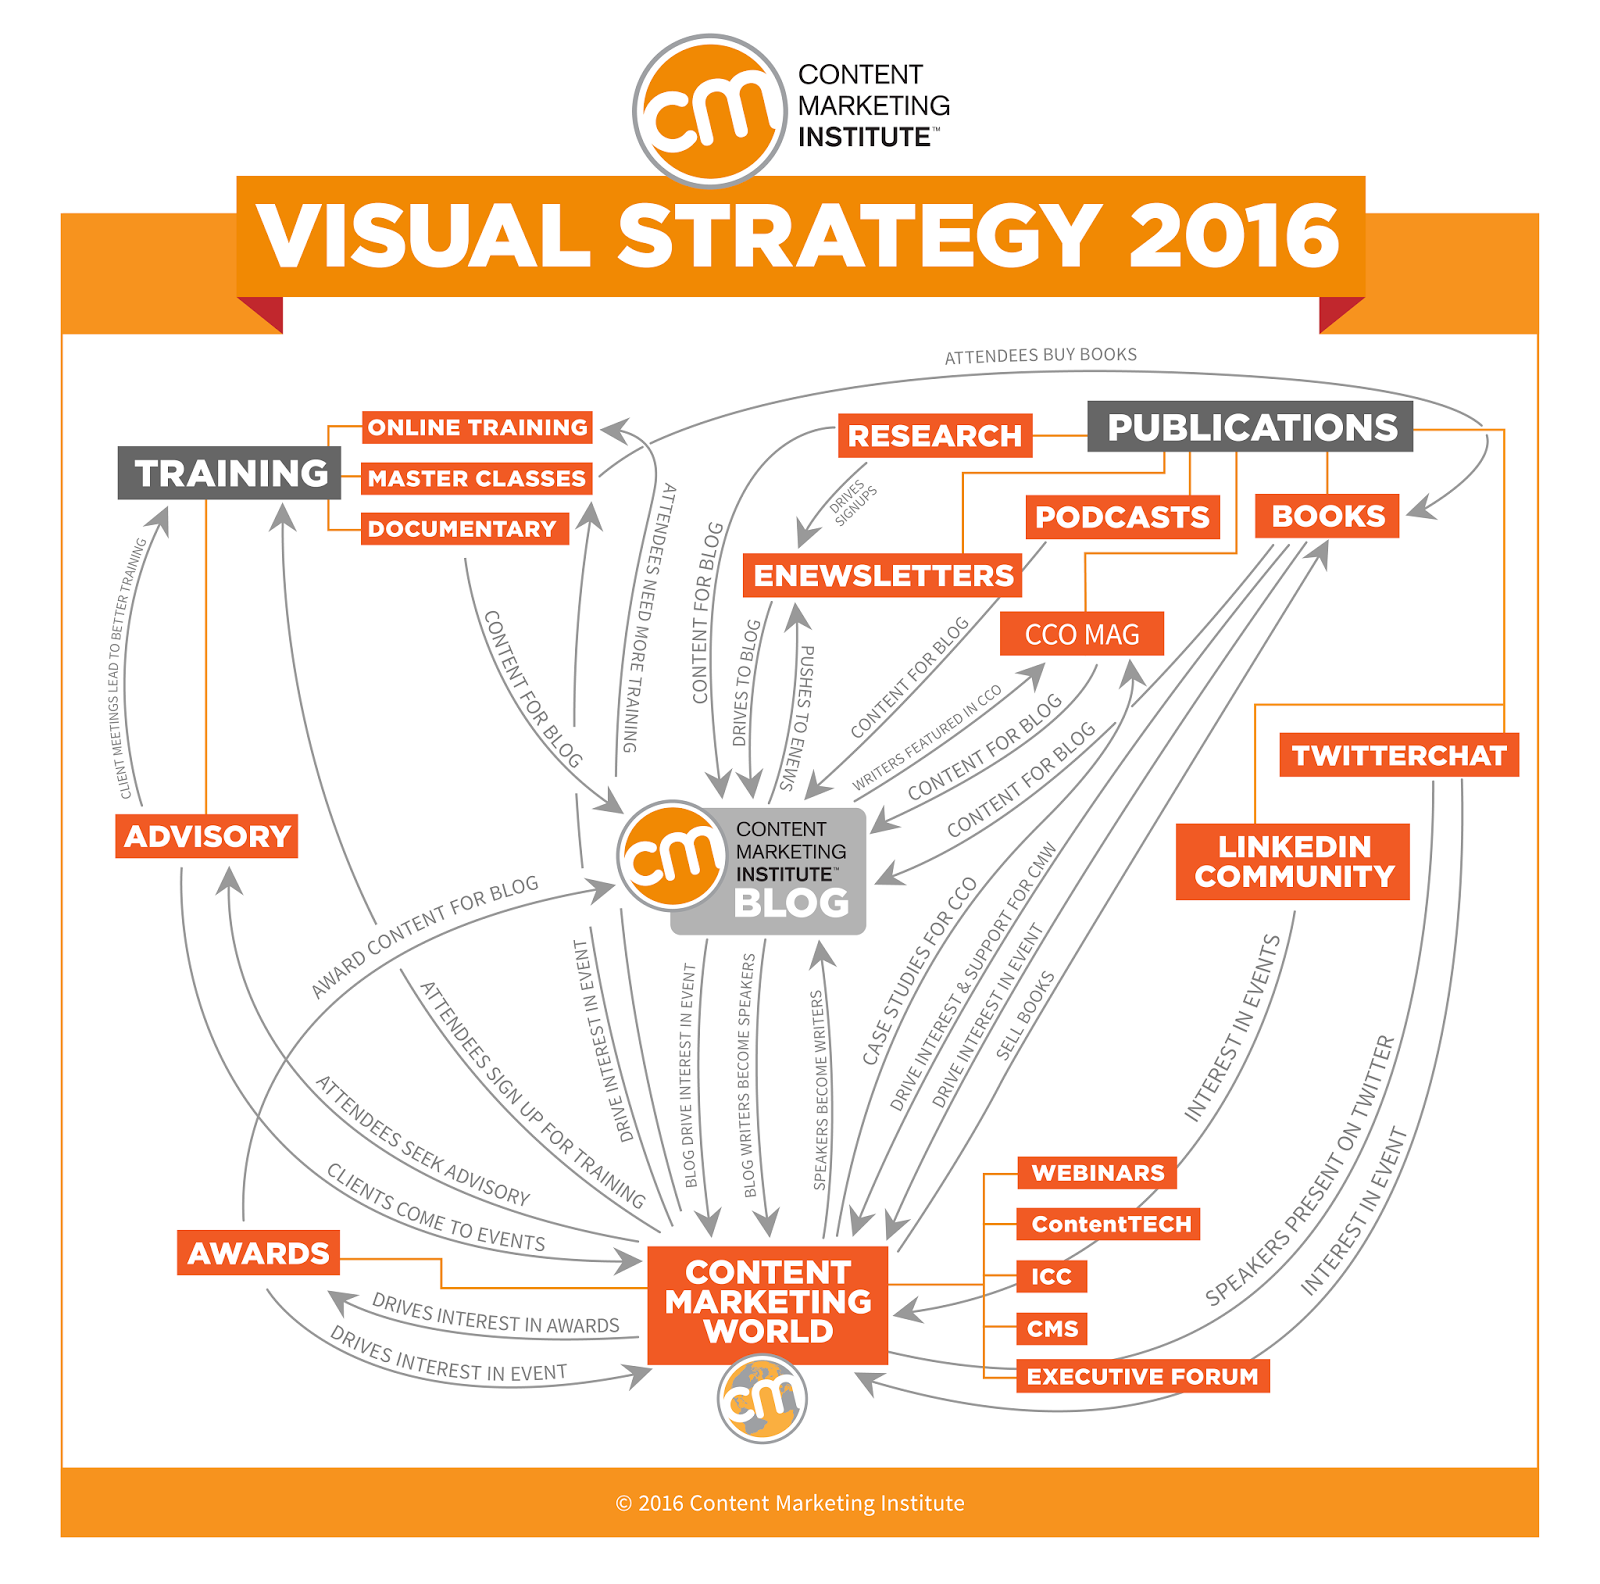 Content Marketing Institute Visual Strategy